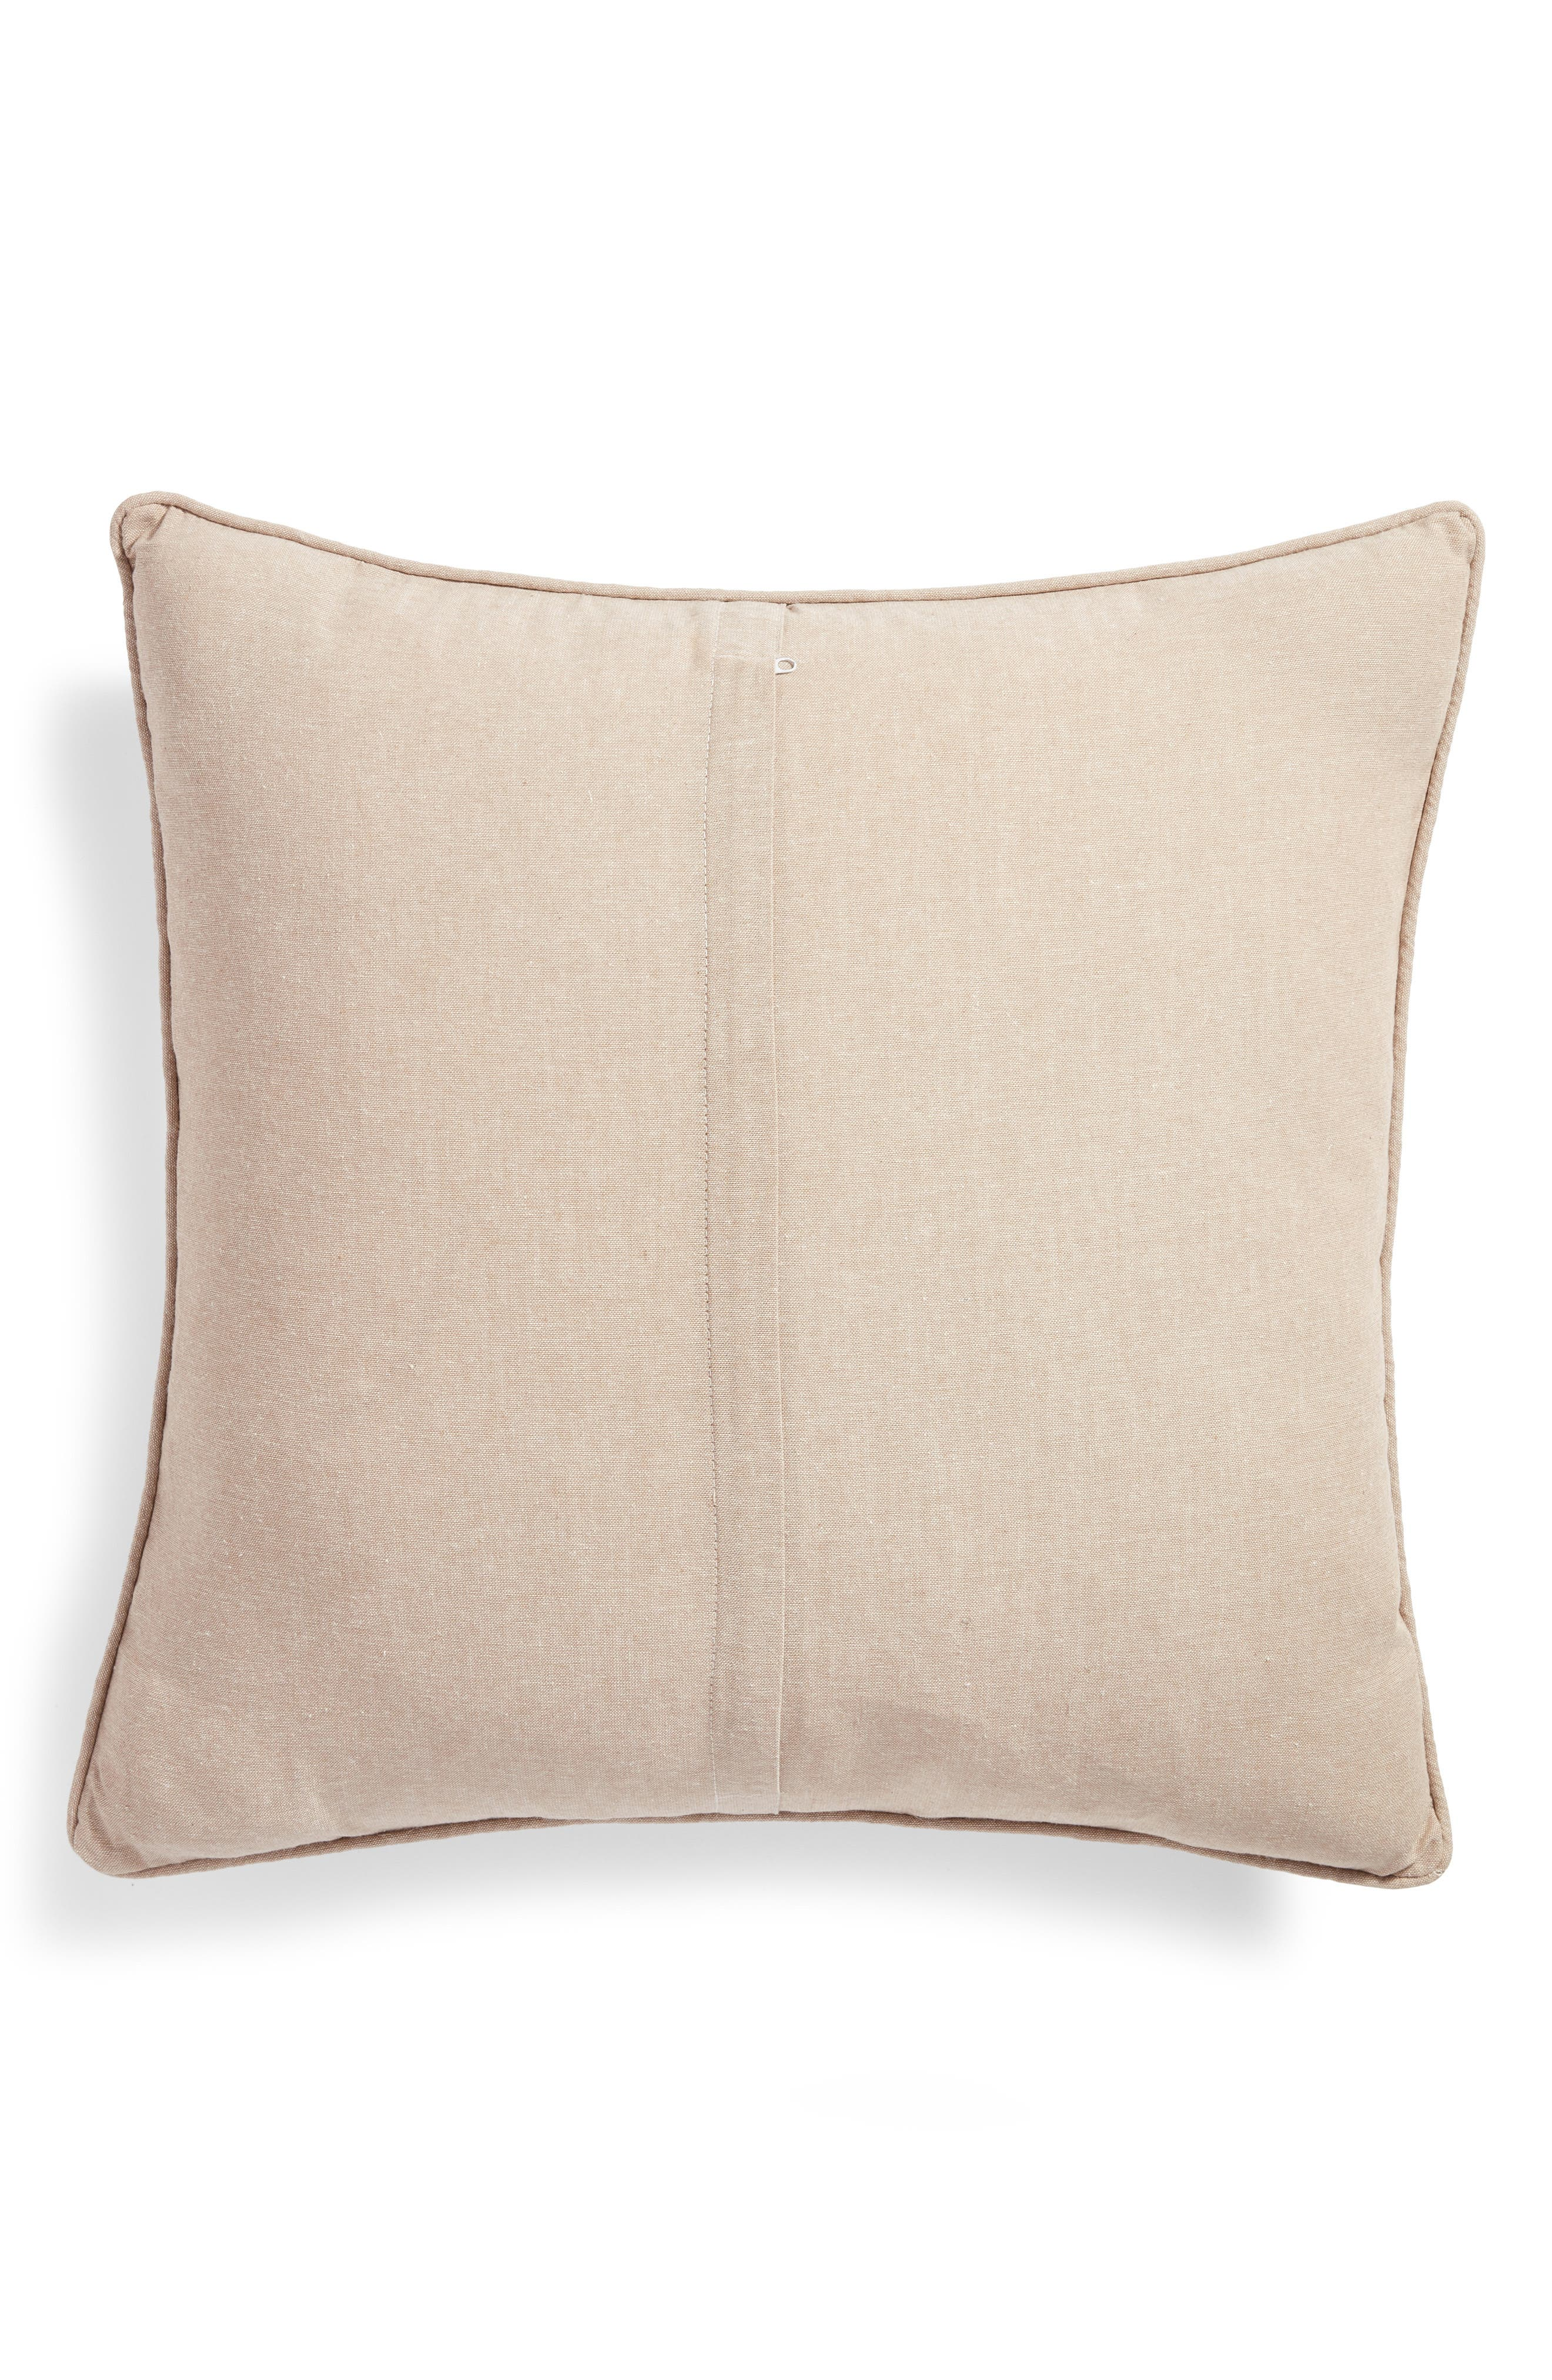 I Heart You Accent Pillow,                             Alternate thumbnail 2, color,                             250